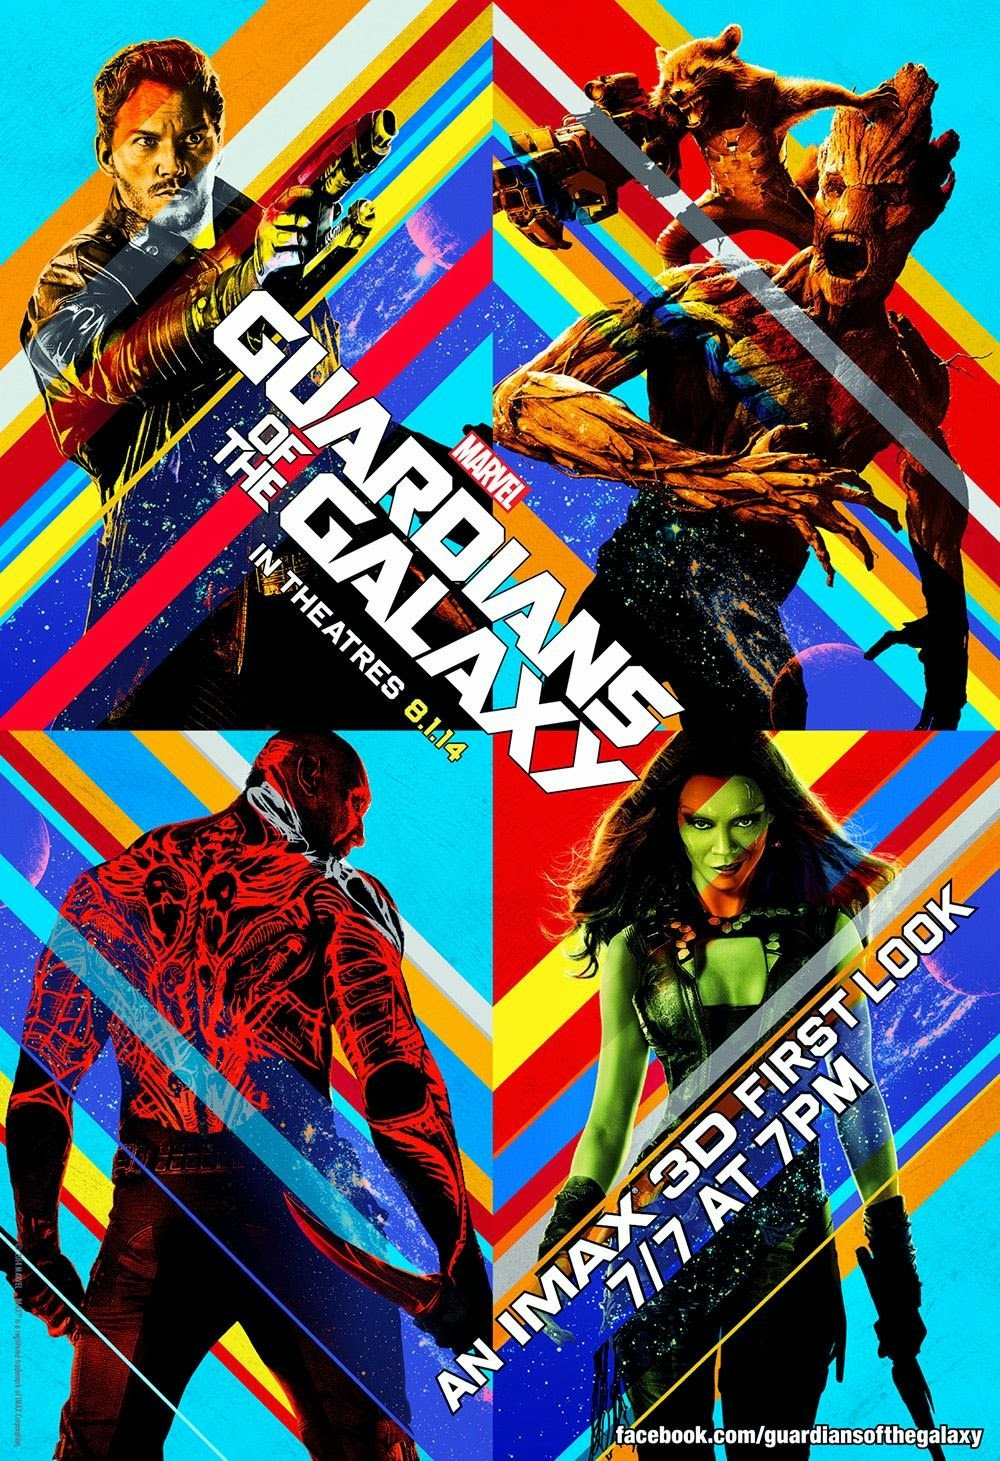 Guardians of the Galaxy - An IMAX 3D First Look Theatrical One Sheet Movie Poster